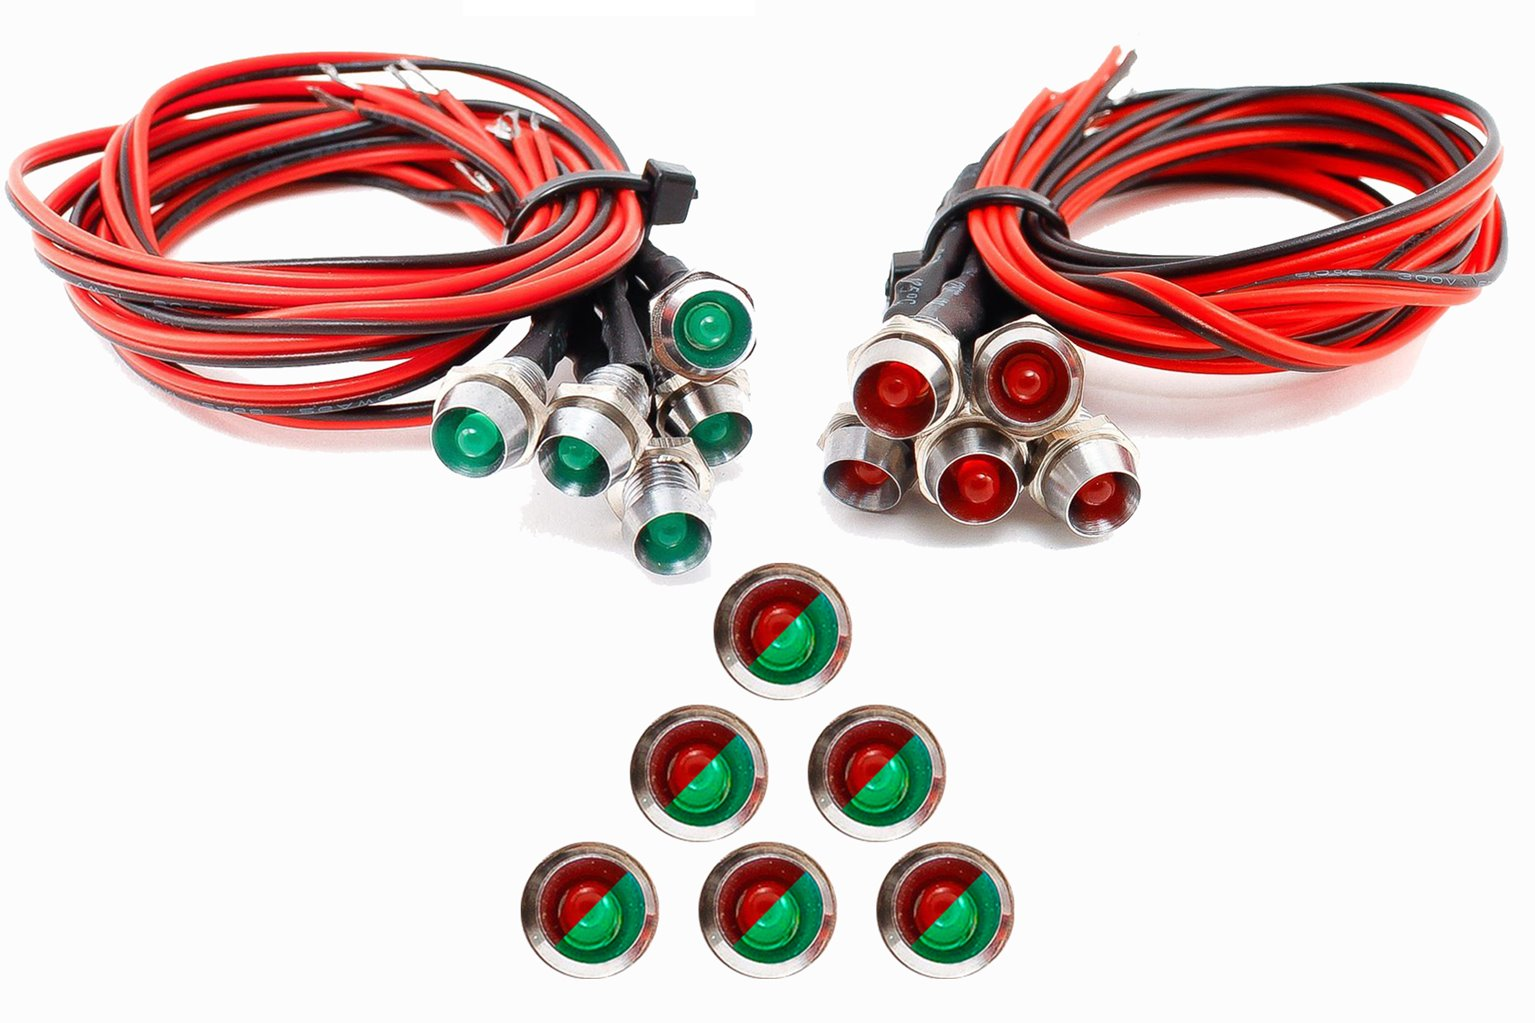 Chrome Mounted Panel 6x Pre-wired Red/Green